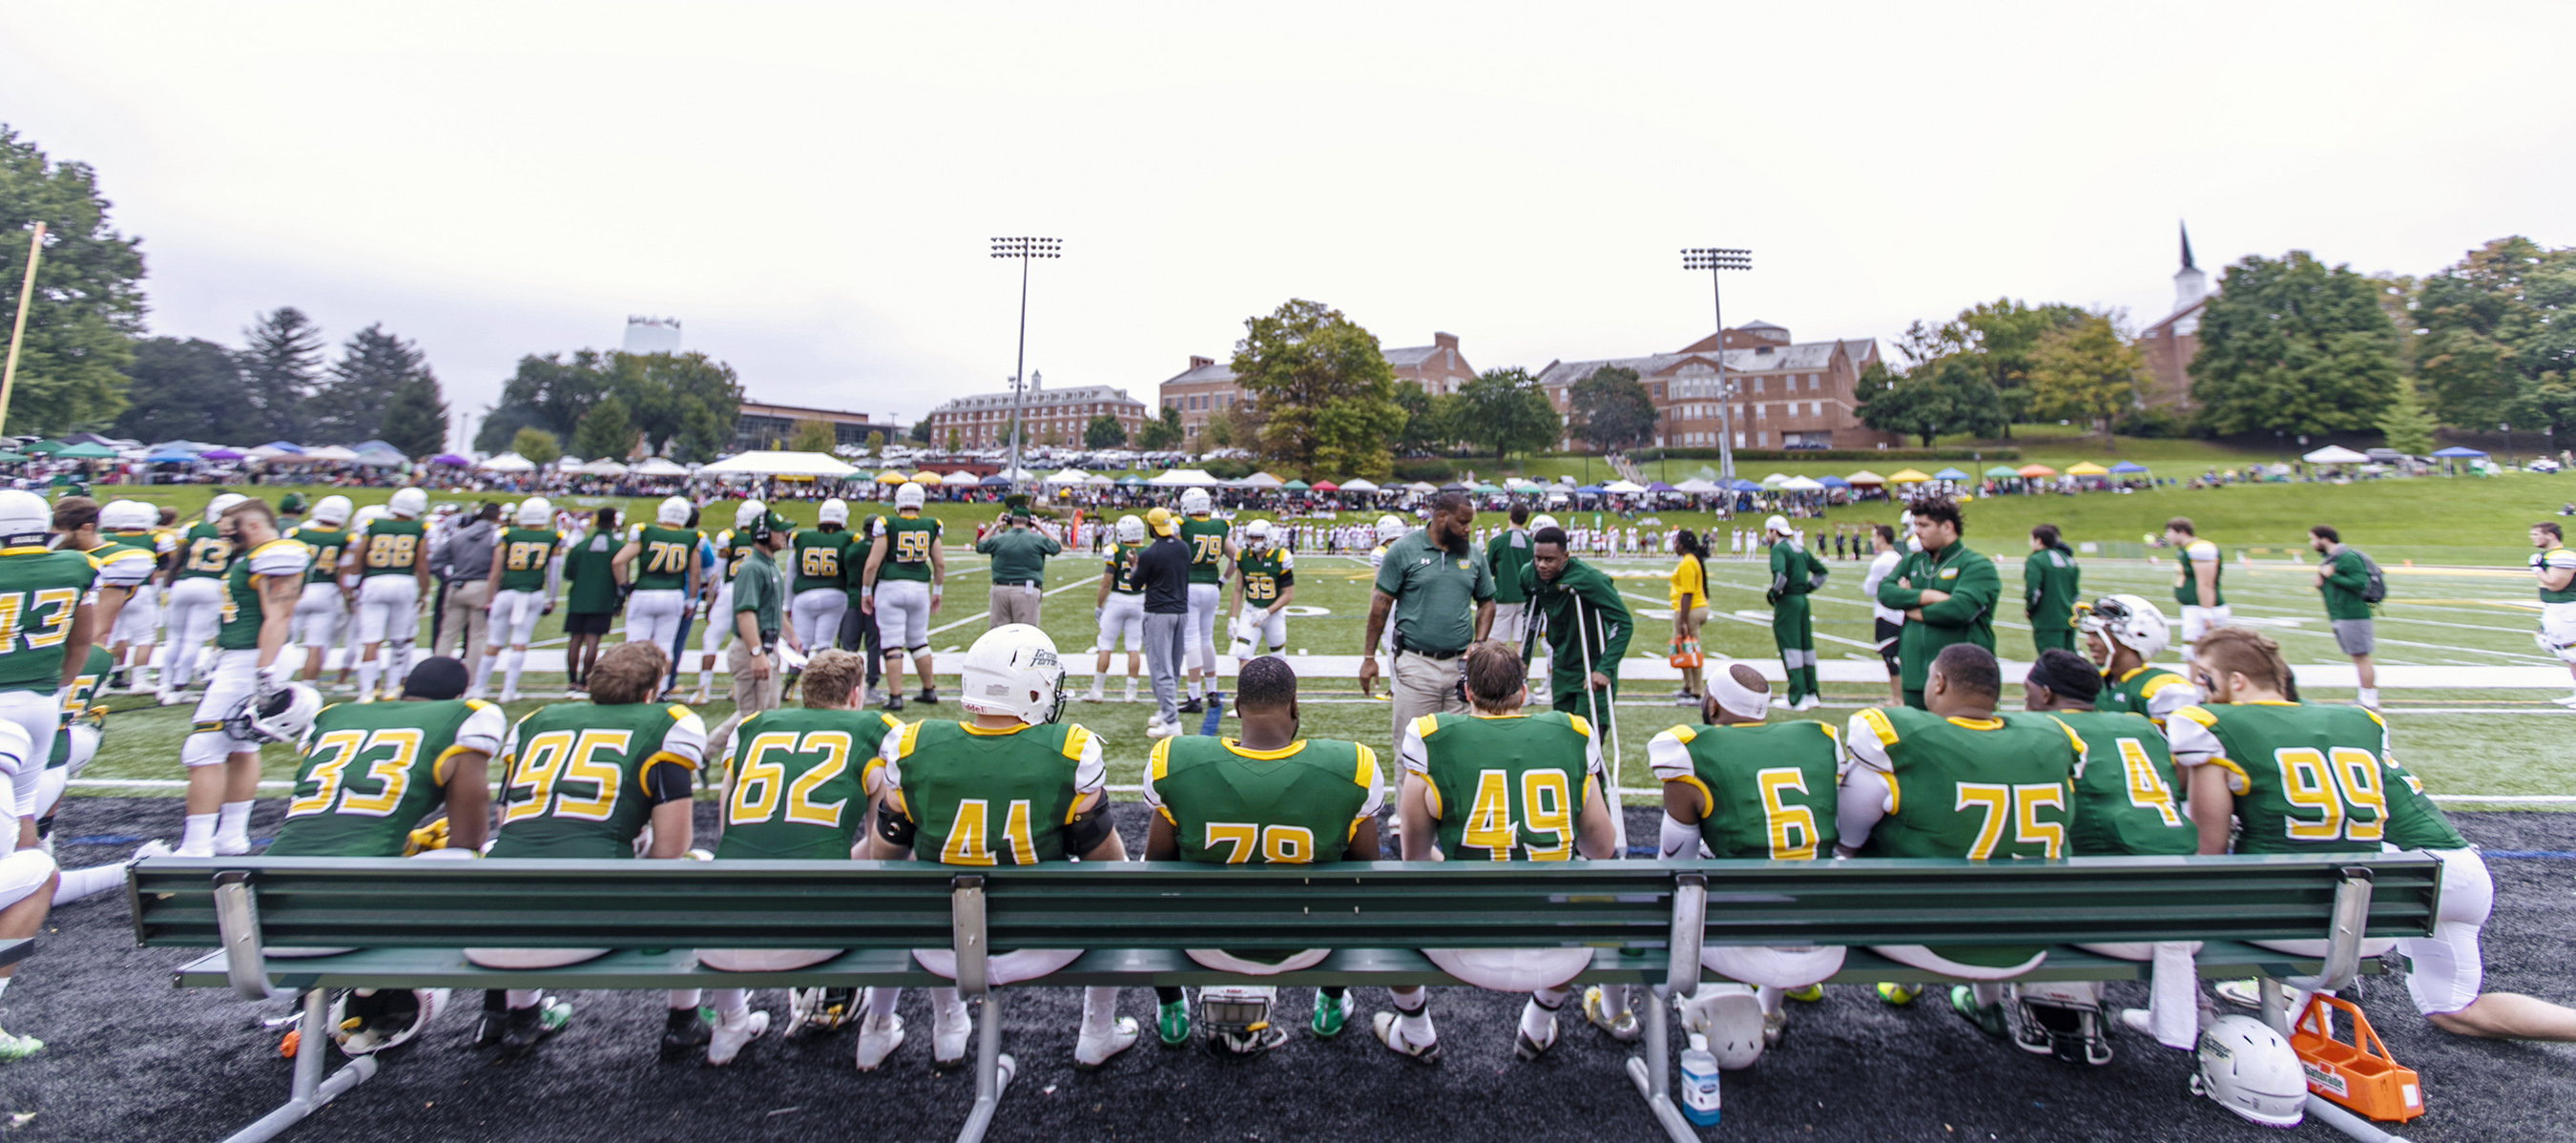 Football players sitting on the bench during football game.